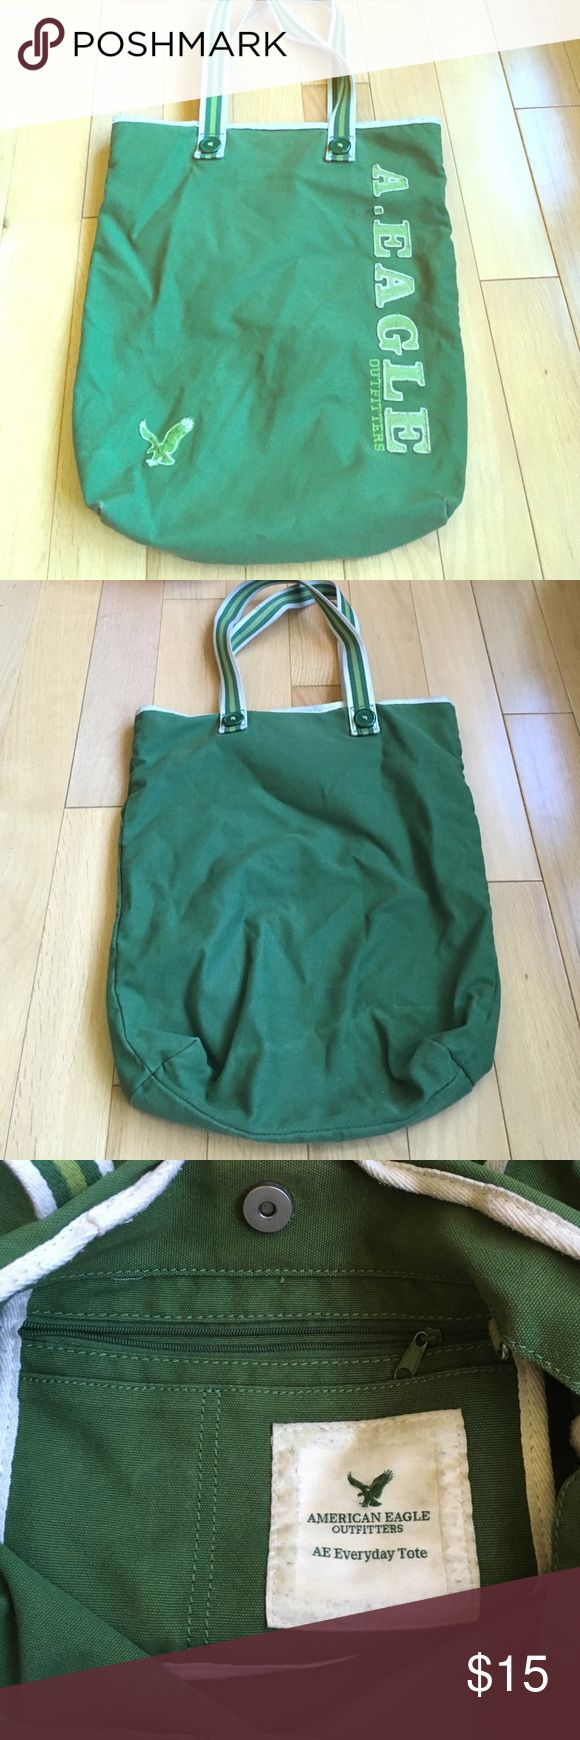 American Eagle tote bag✨ two tone green✨ Cute American eagle tote bag✨ some pilling✨good condition American Eagle Outfitters Bags Totes